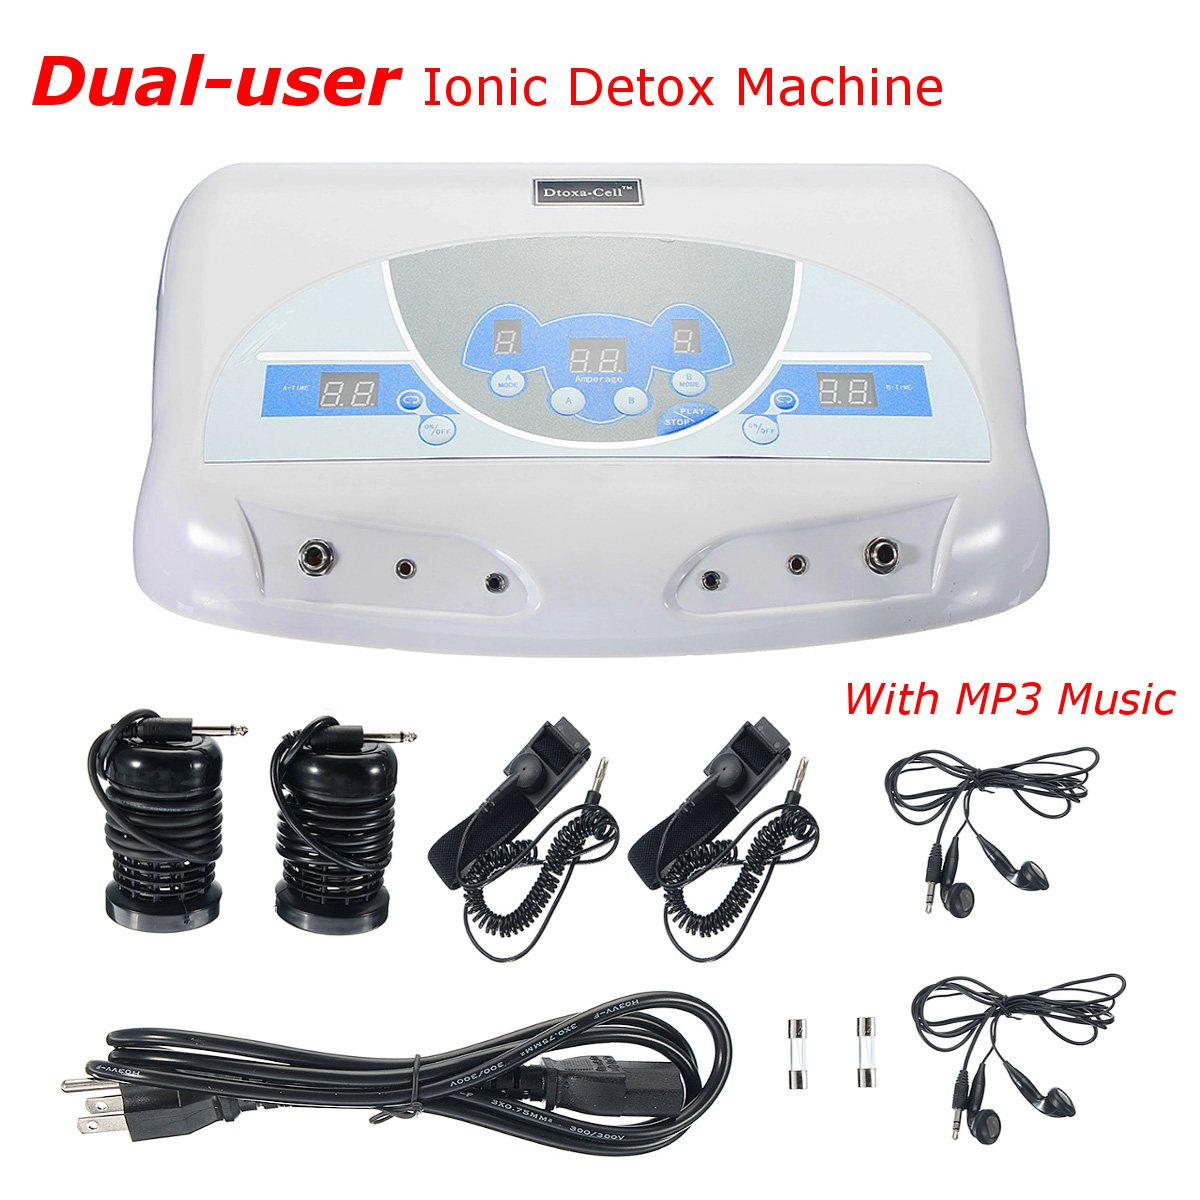 Dual-user Ionic Detox Machine Foot Bath Spa Tool LCD w/ MP3 Music Cleanse Salon кальсоны user кальсоны